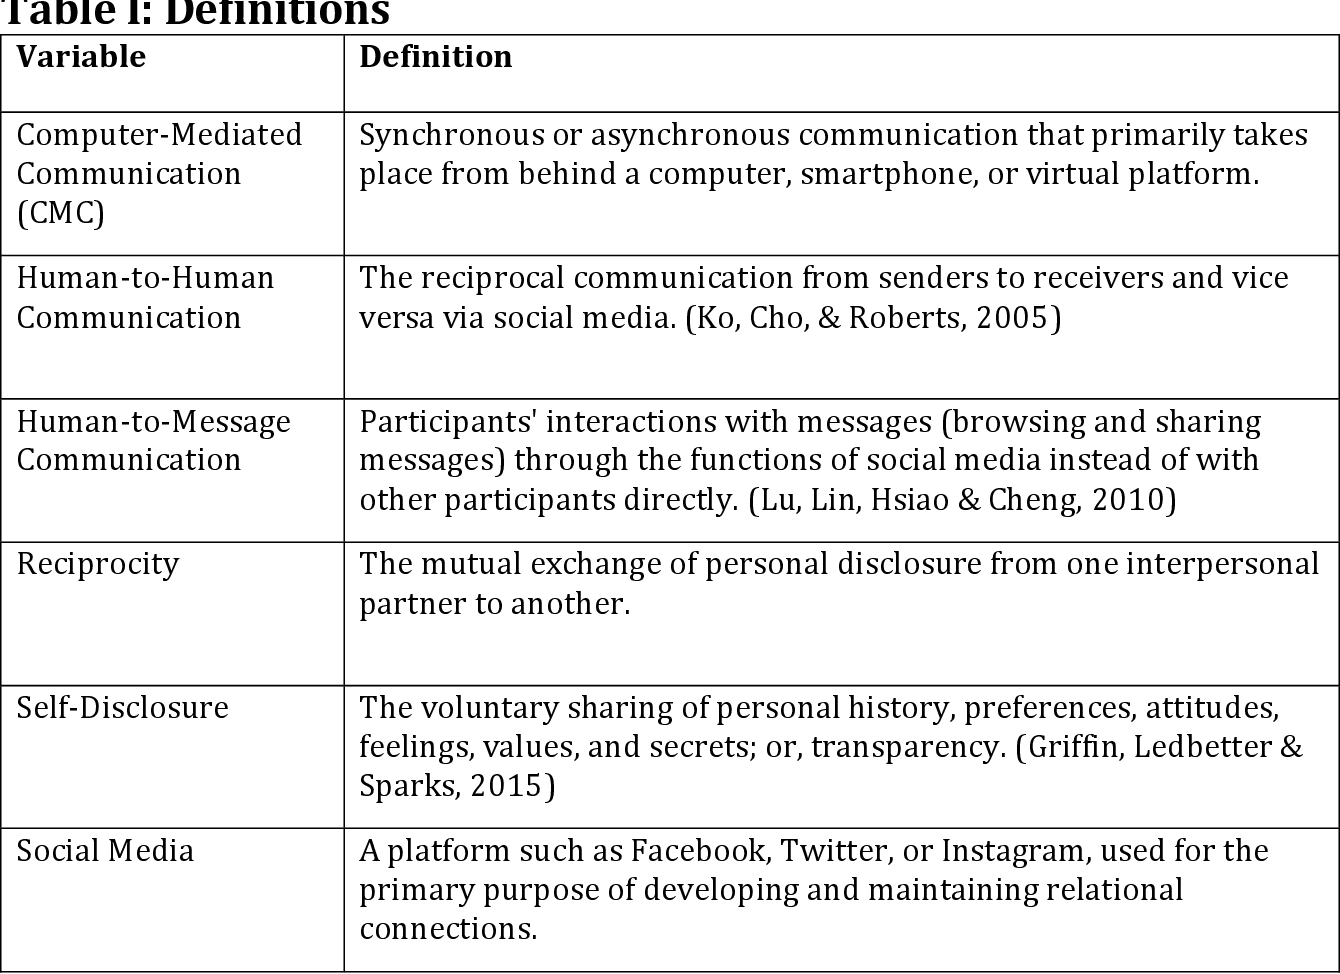 What impact do social media sites have on relationships